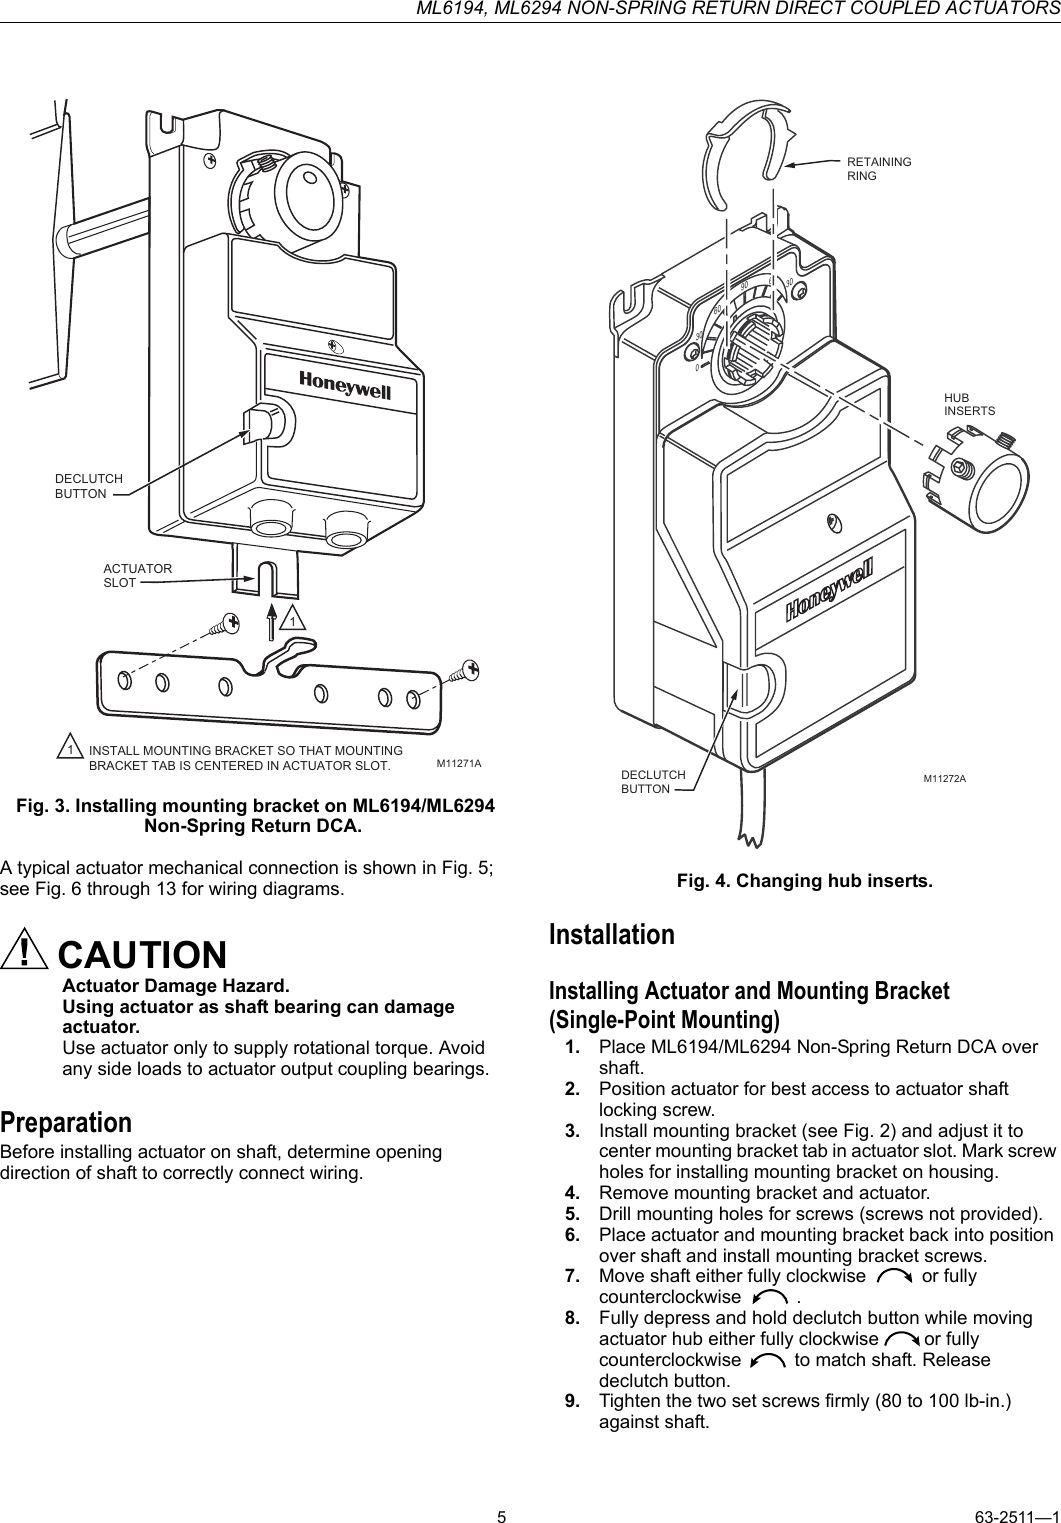 Honeywell Ml6194 Users Manual 63 2511 Ml6294 Non Spring. Page 5 Of 8 Honeywell Honeywellml6194usersmanual 63. Wiring. Honeywell Direct Coupled Actuator Wiring Diagram At Scoala.co